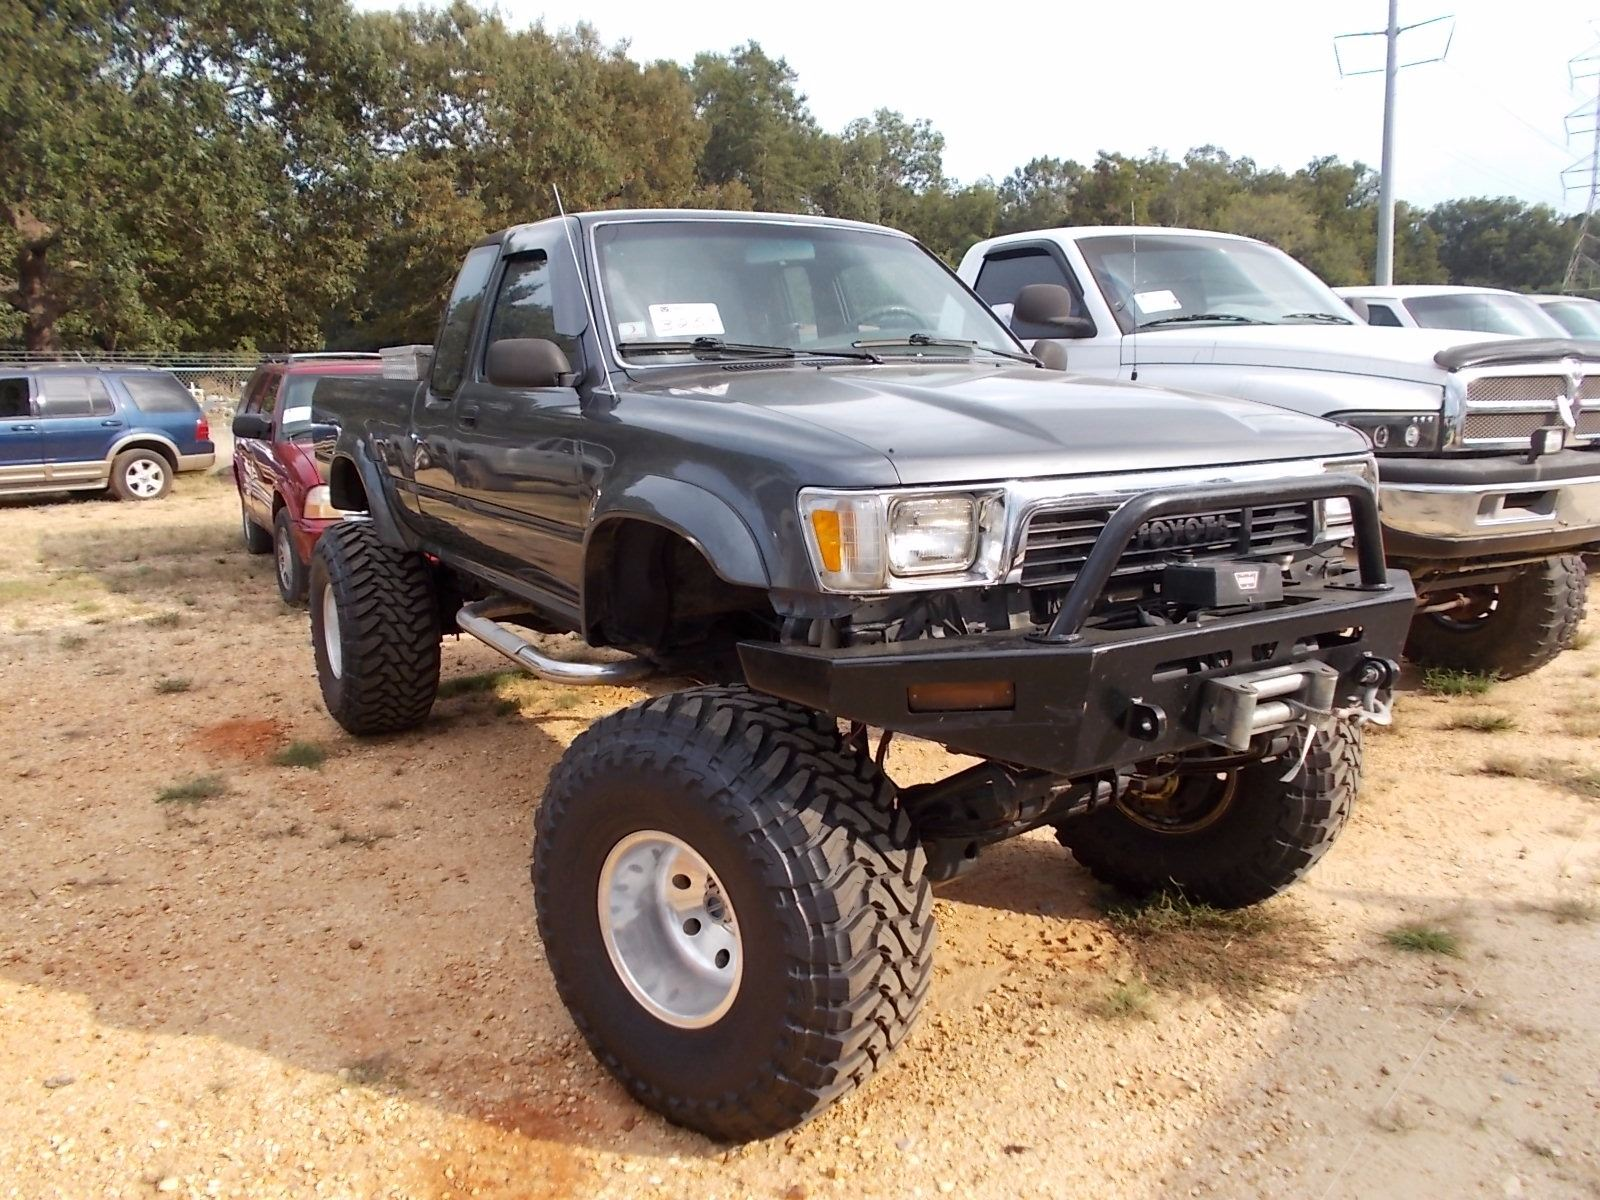 1990 toyota tacoma pickup vin sn jt4vn13d0l5020364 4x4 extended cab 6 cyl gas engine a t. Black Bedroom Furniture Sets. Home Design Ideas